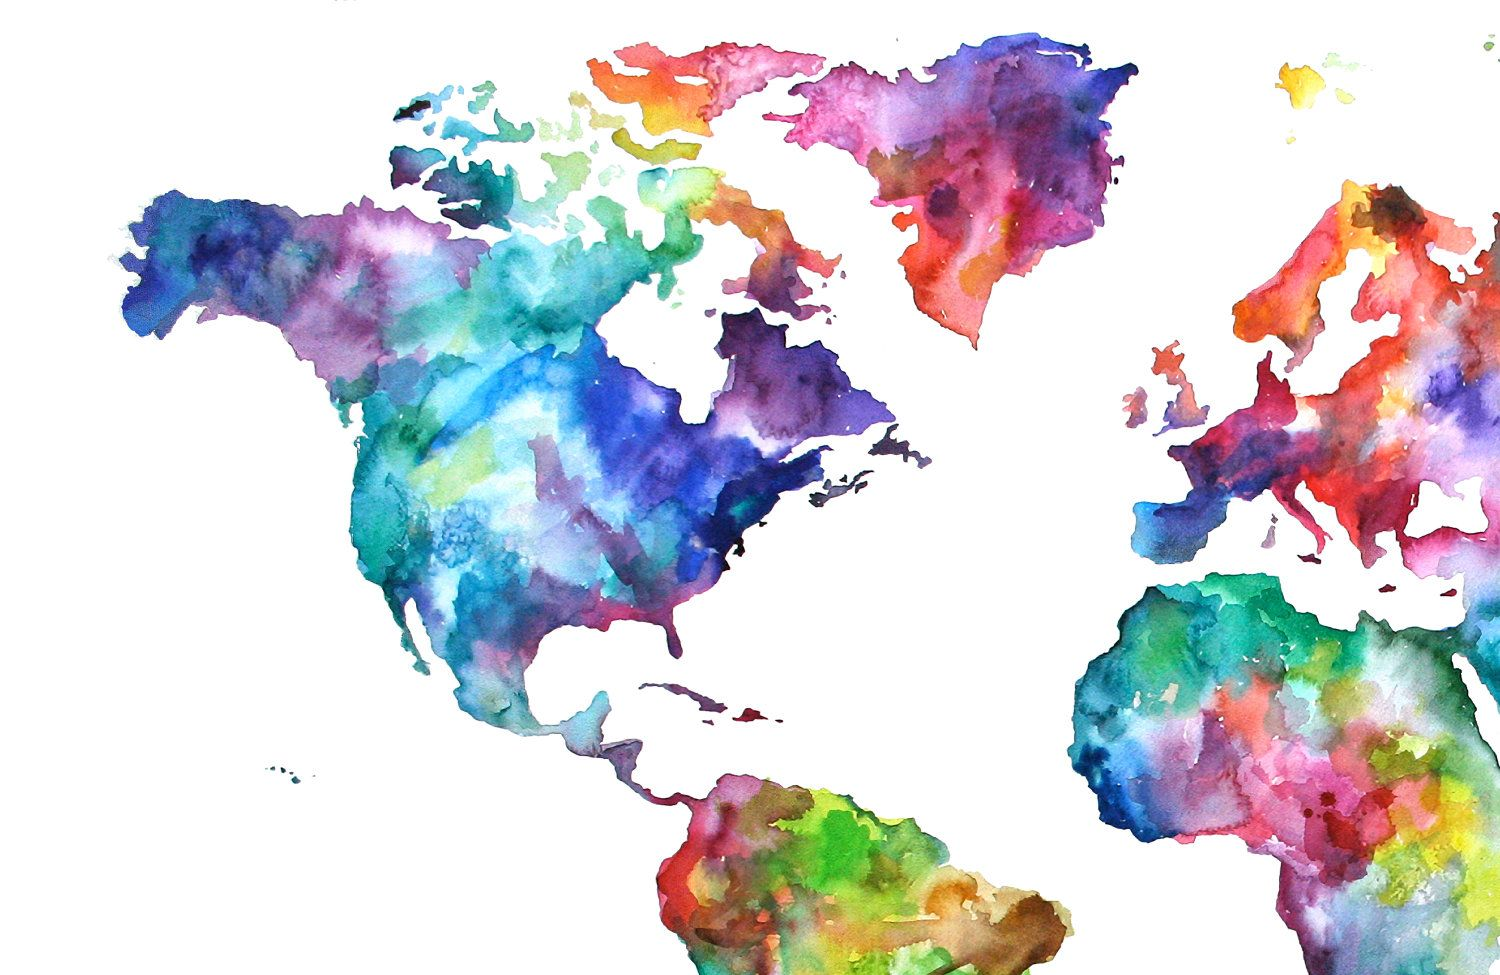 20x30 watercolor map print world map watercolor painting 9500 items similar to 20x30 watercolor map print world map watercolor painting on etsy gumiabroncs Image collections